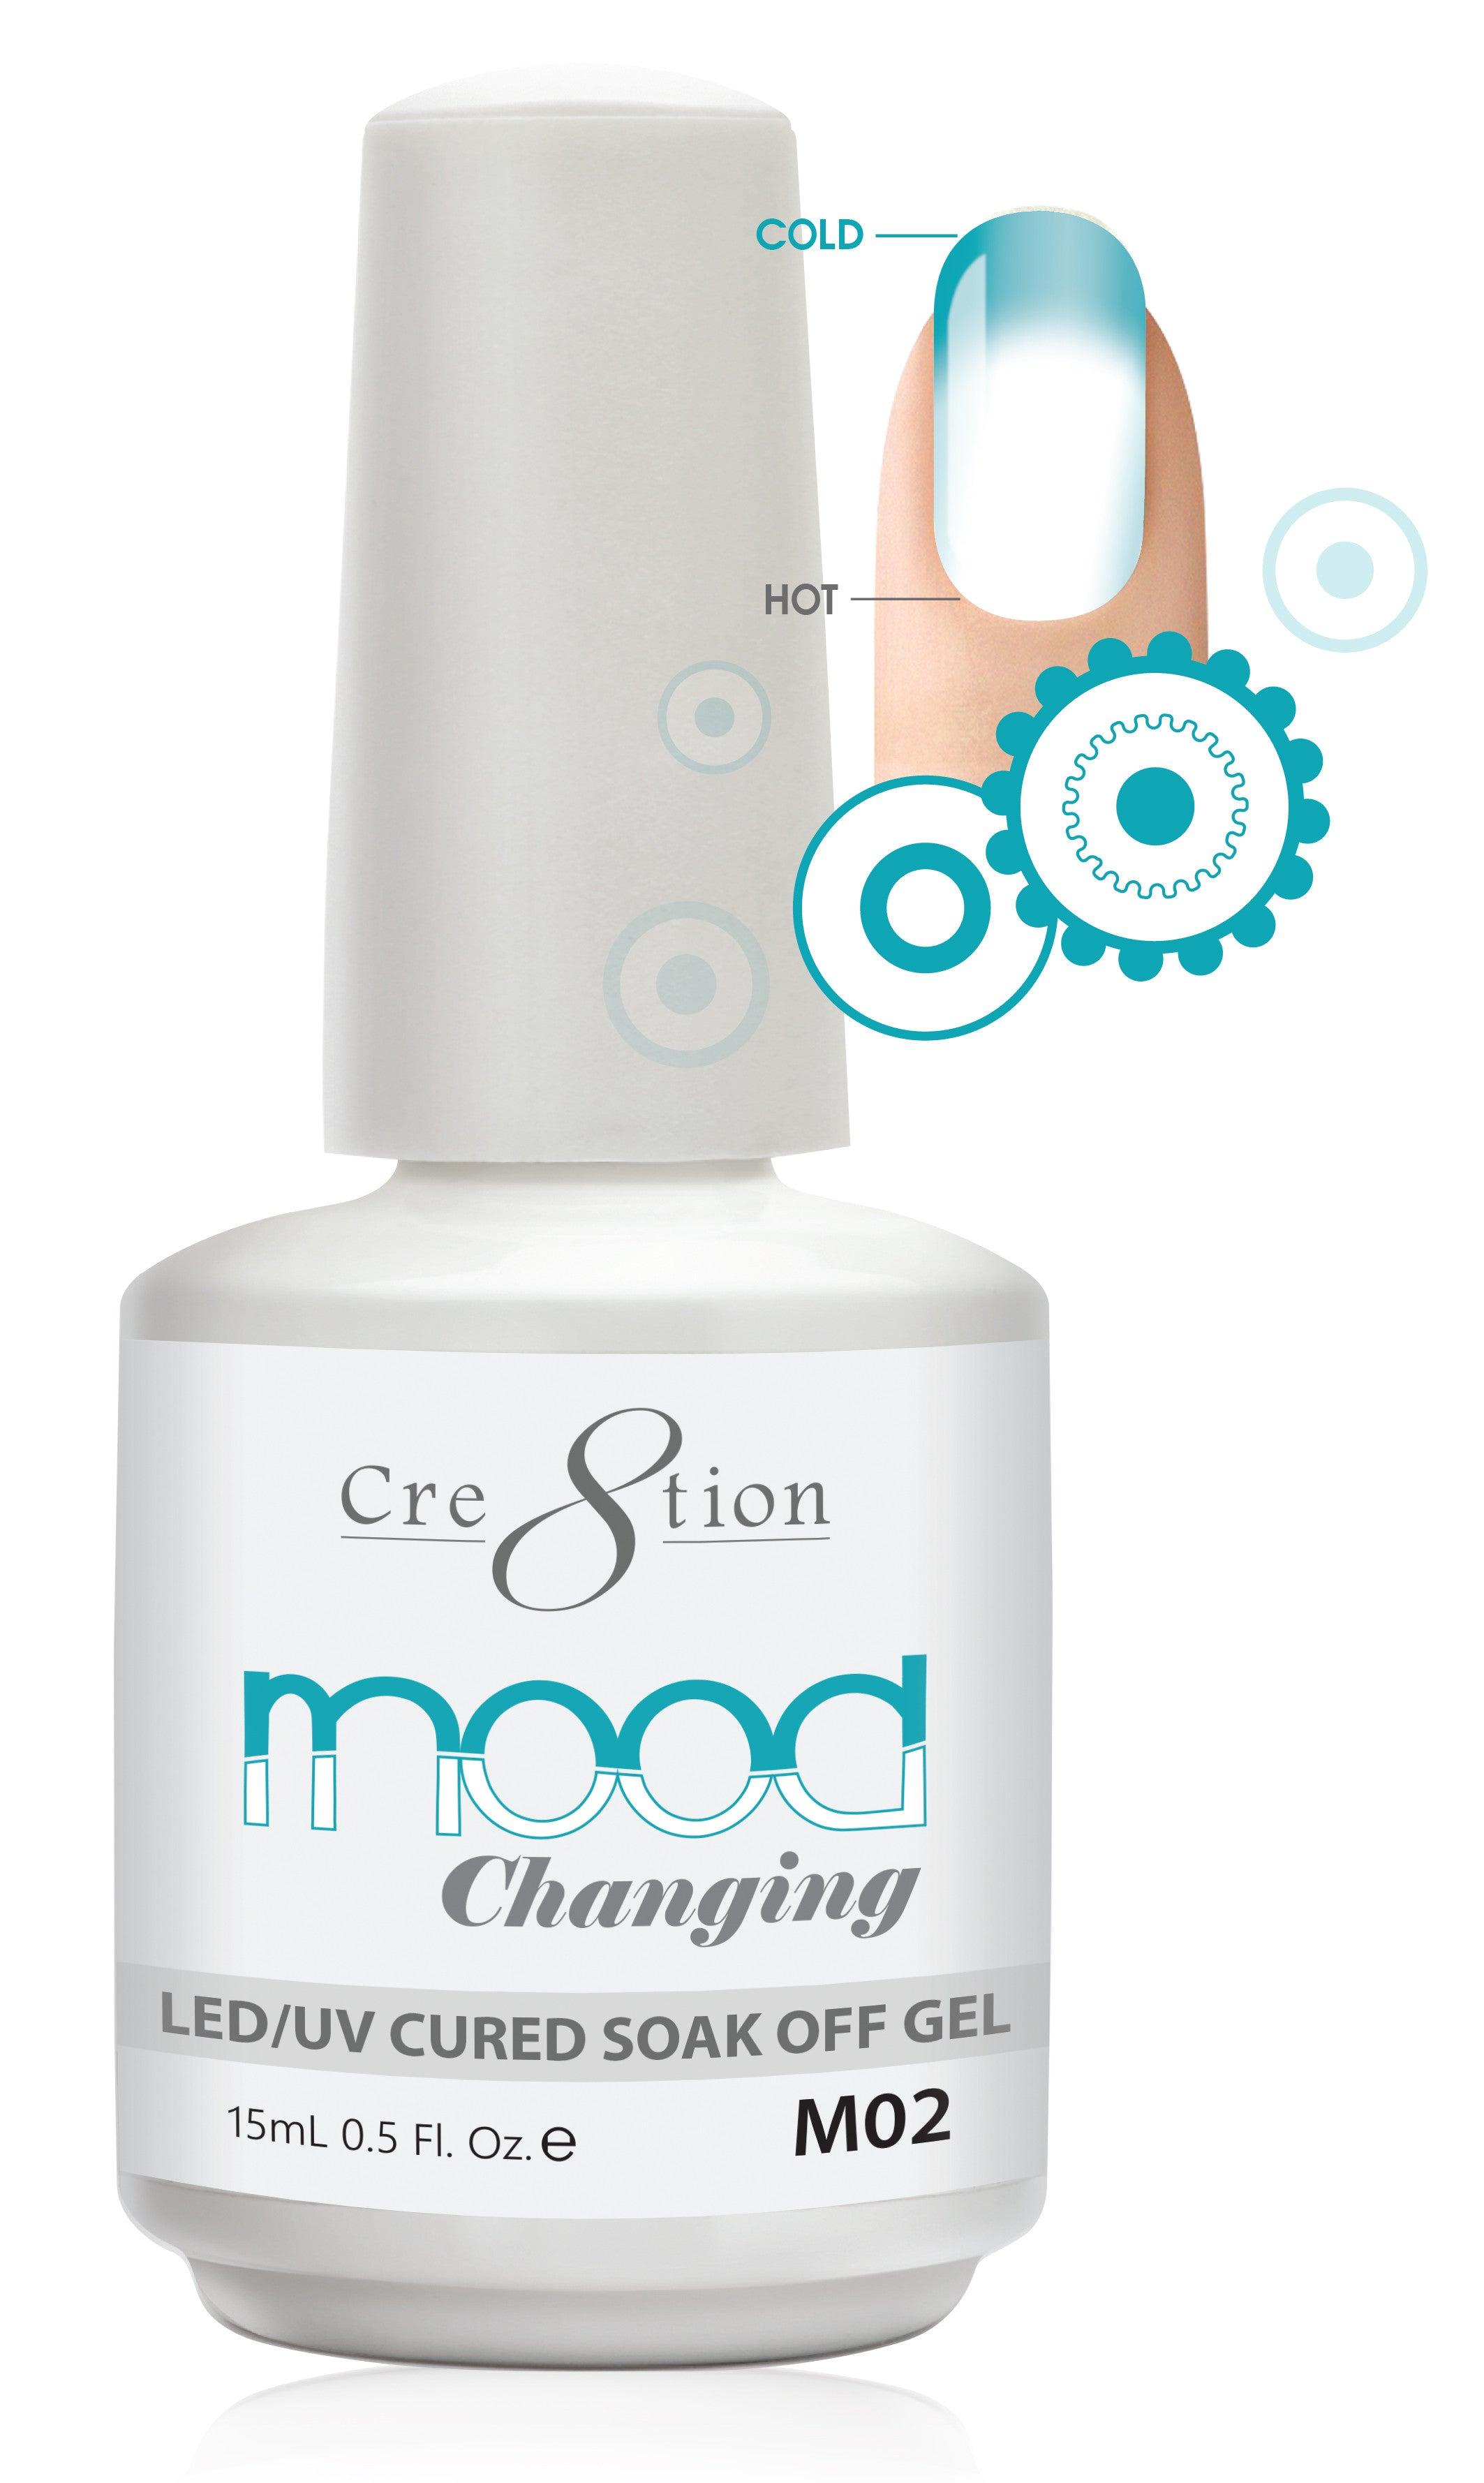 Cre8tion Mood Changing Soak Off Gel M02-Creamy